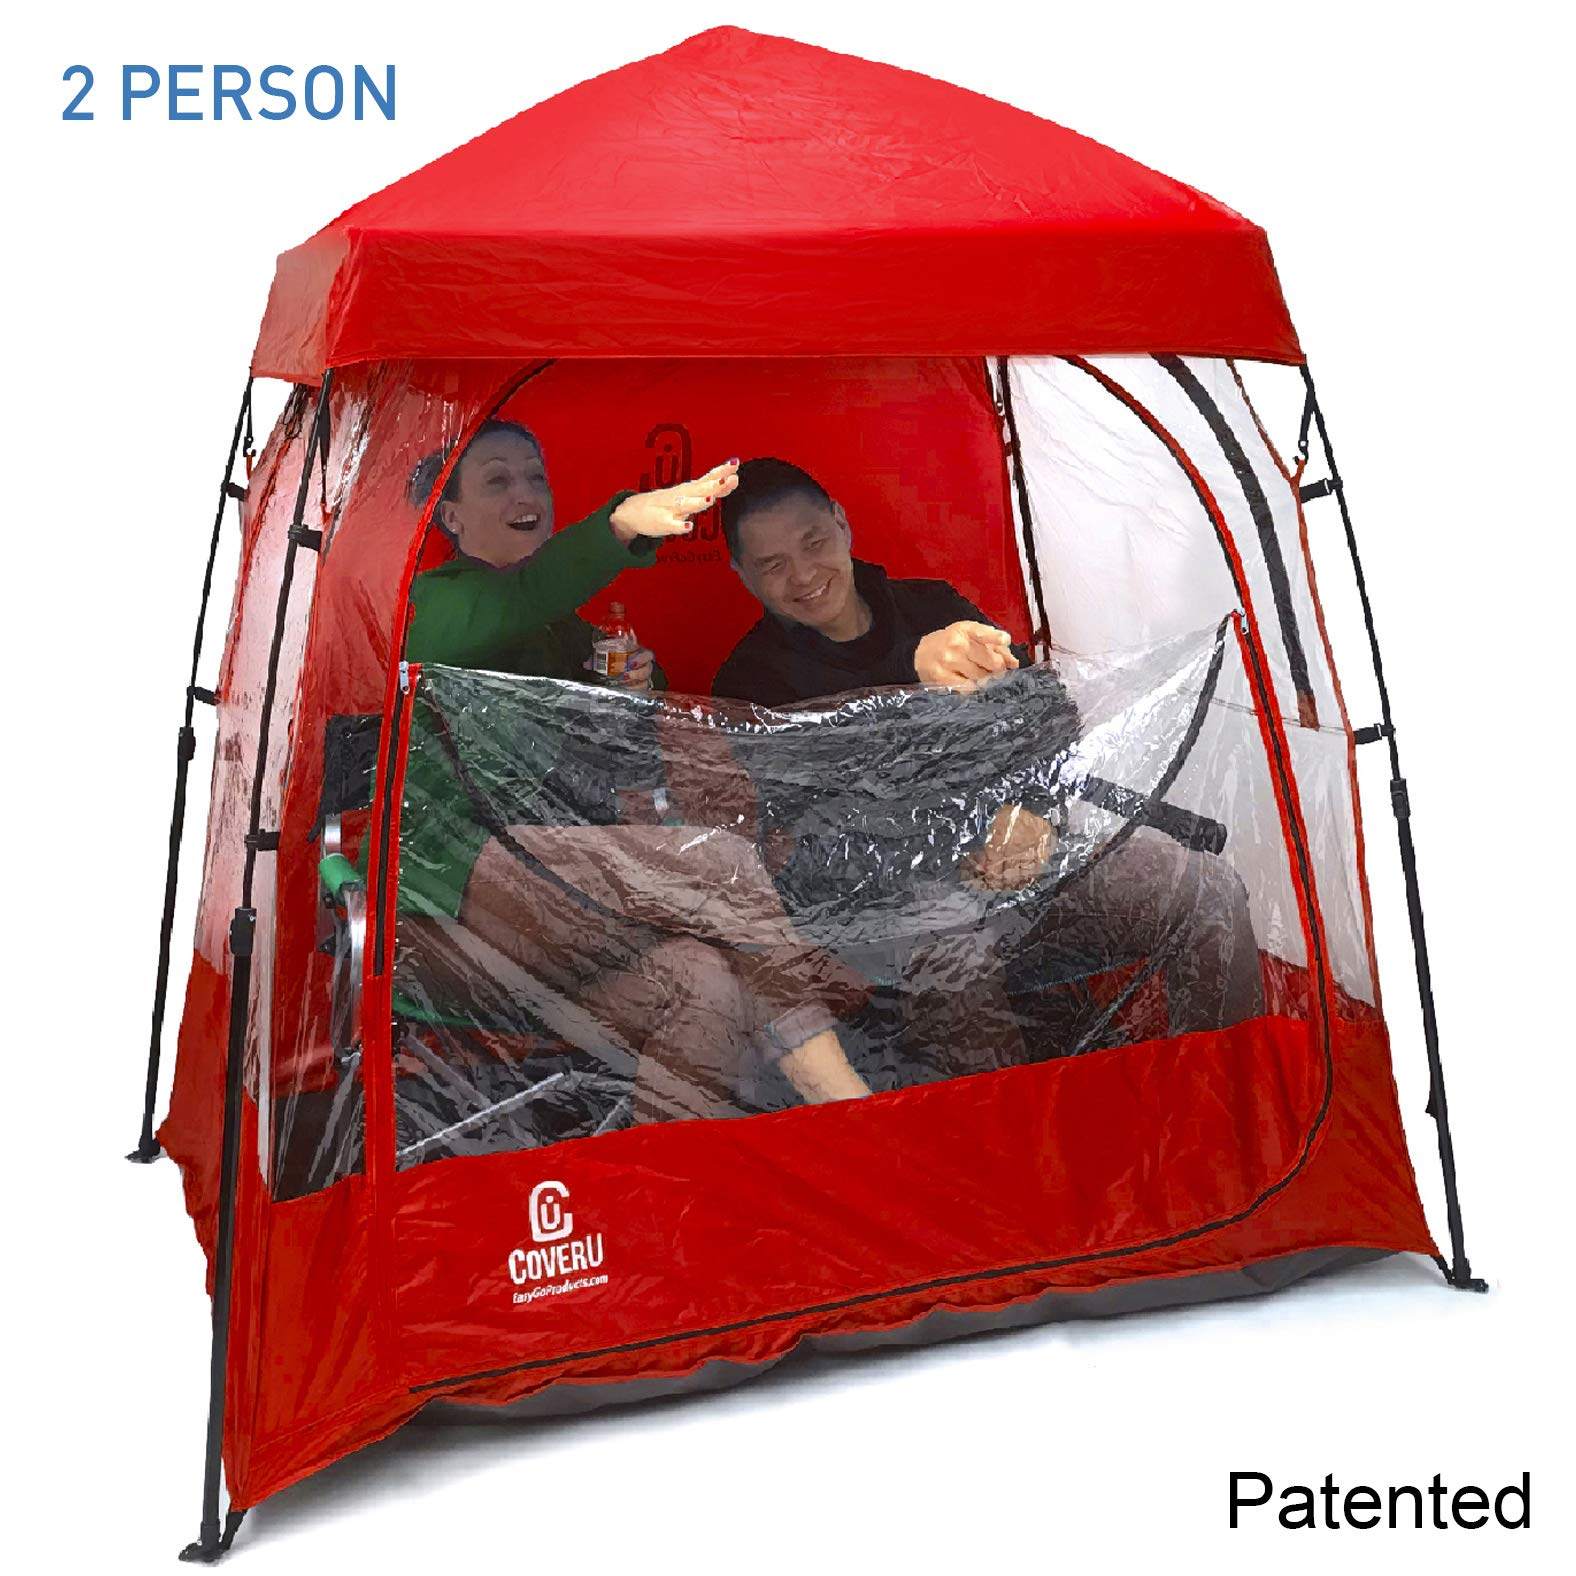 EasyGo Product CoverU Sports Shelter - 2 Person Weather Tent Pod (RED) -Patented by EasyGoProducts